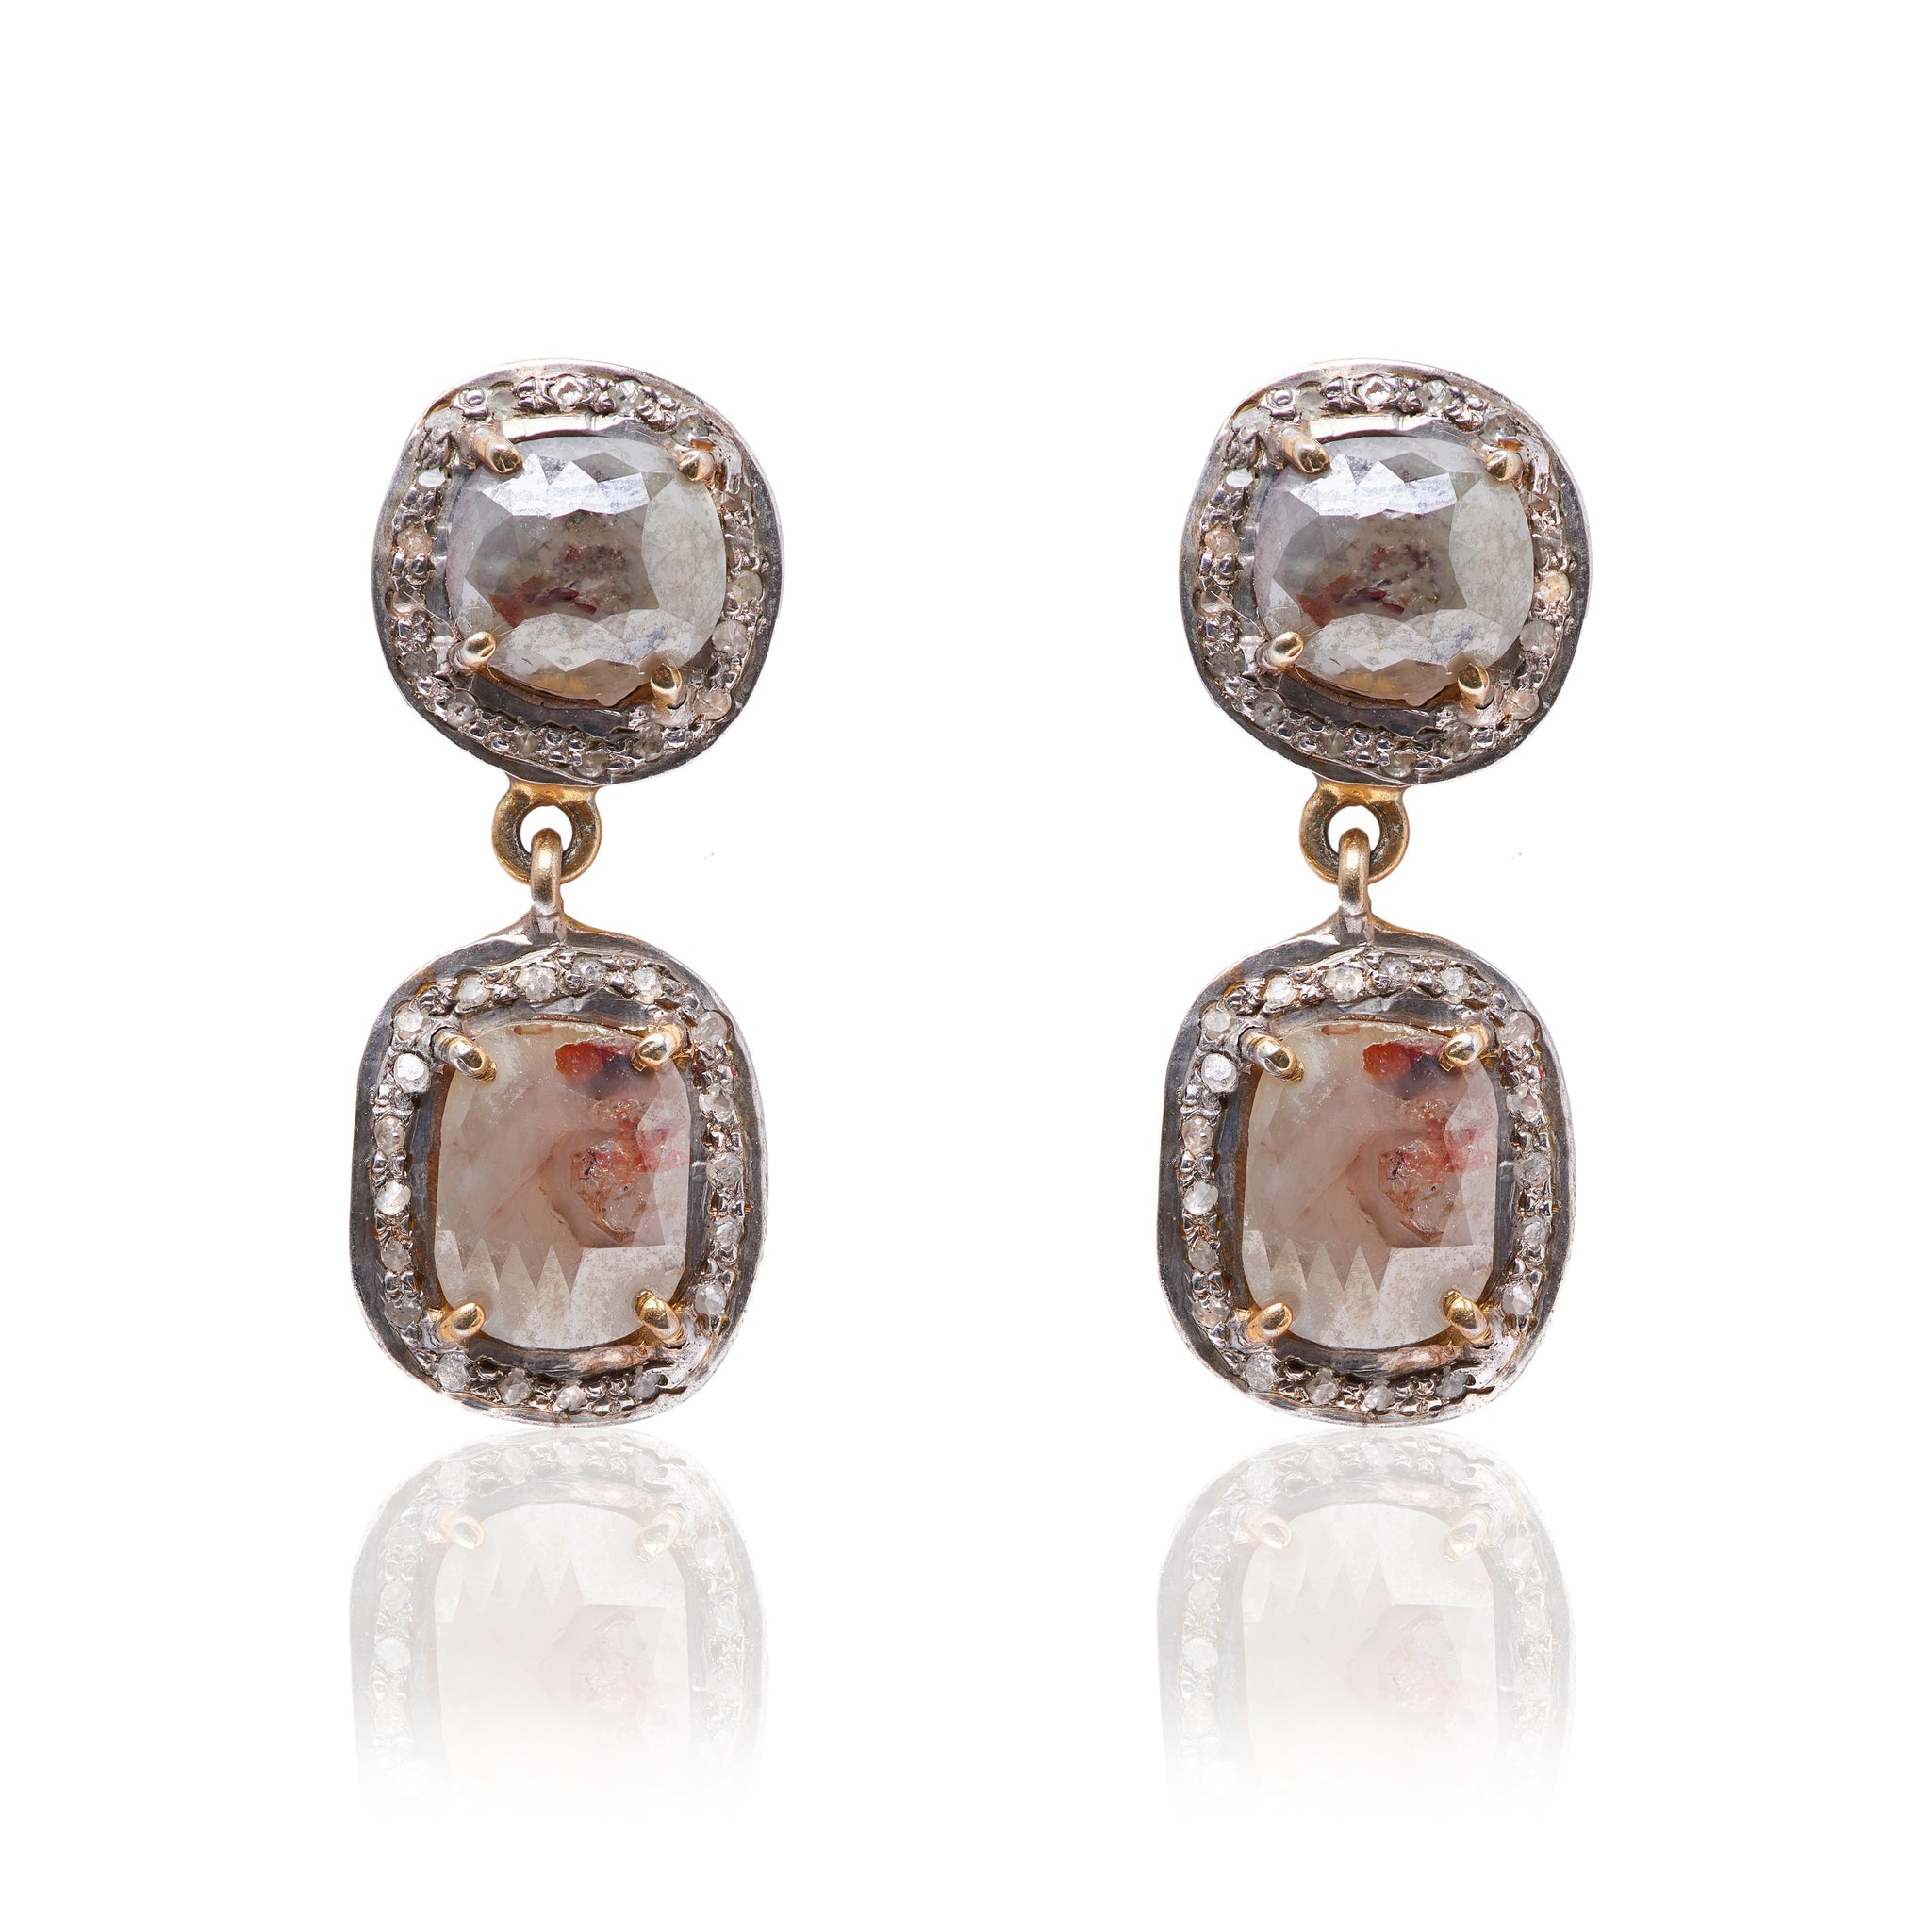 Double cognac diamond earrings set in 14k Yellow Gold